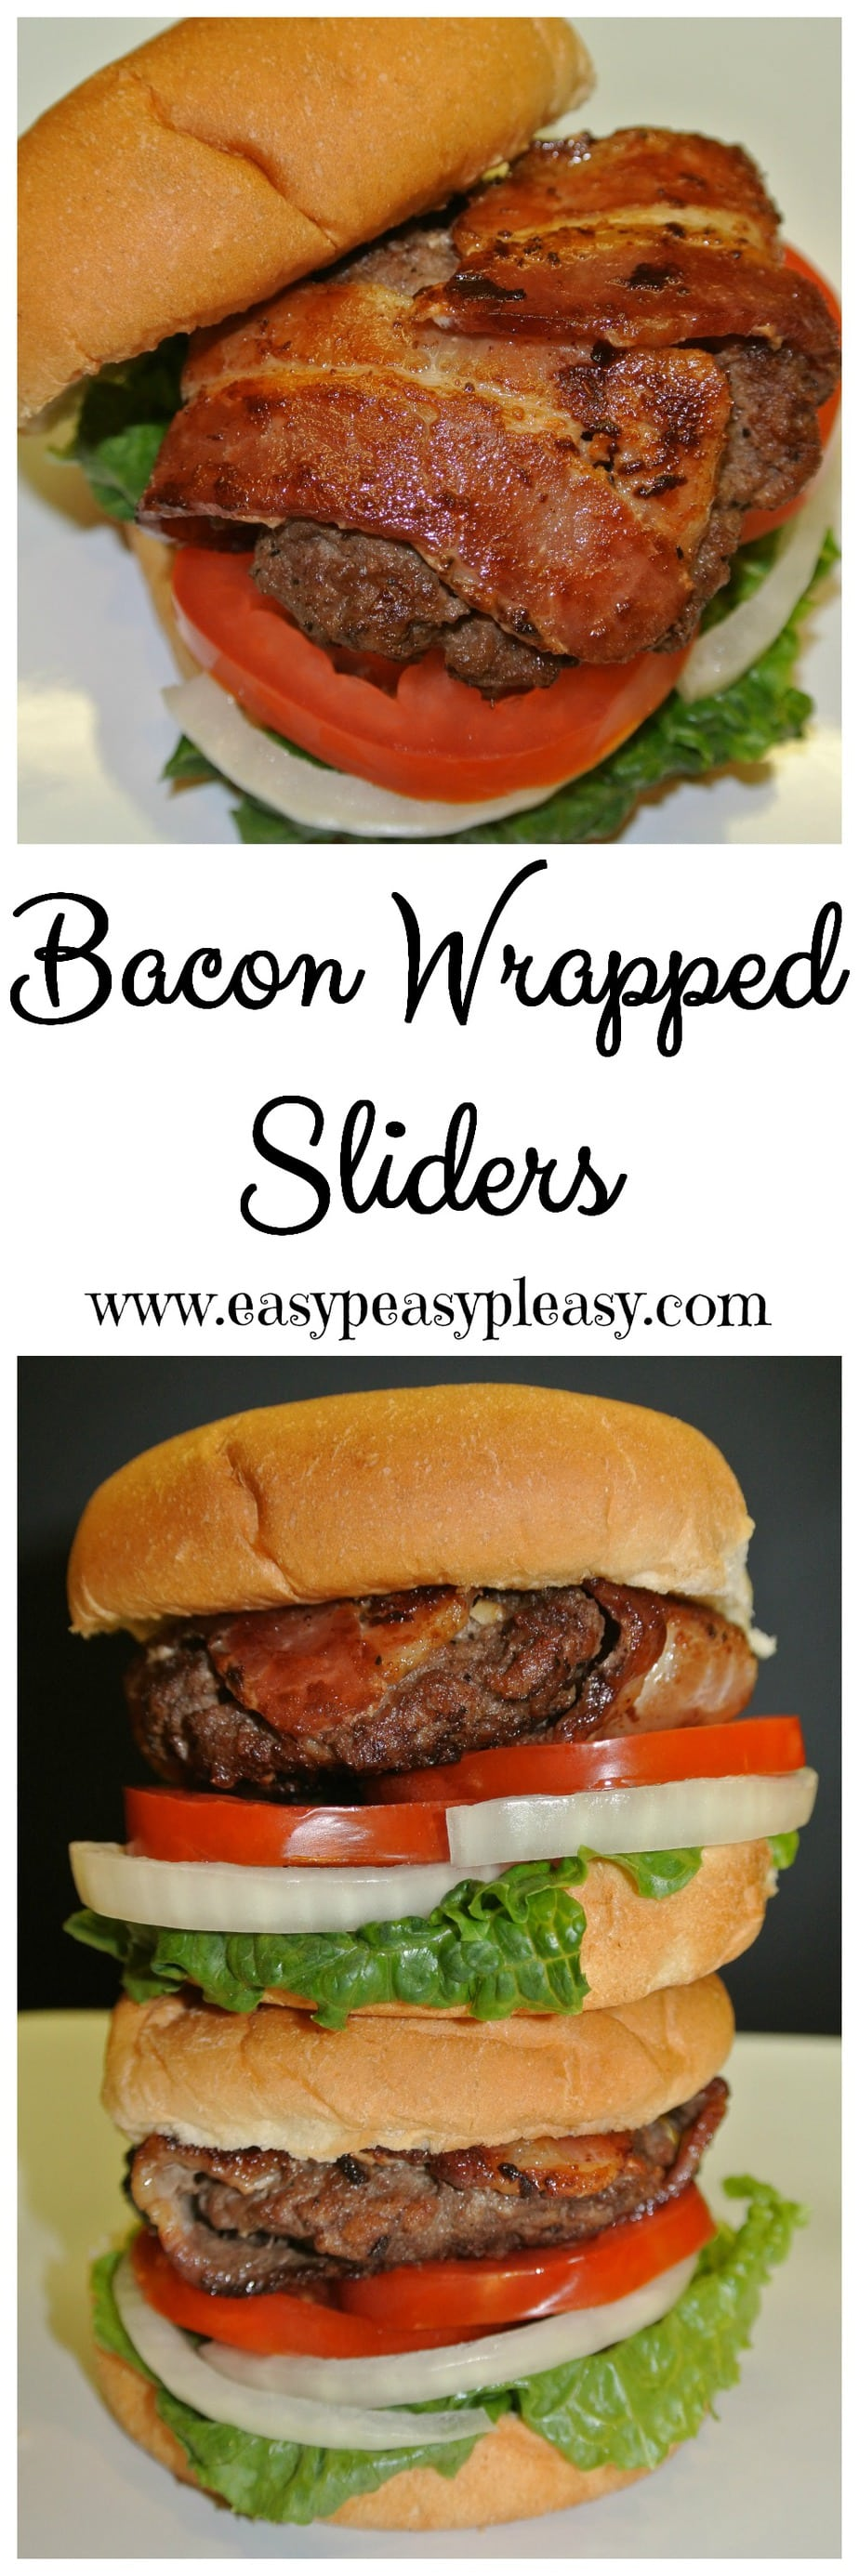 Are you looking for a fun twist on the classic grilled burger? You should try these Bacon Wrapped Sliders at your next cookout!